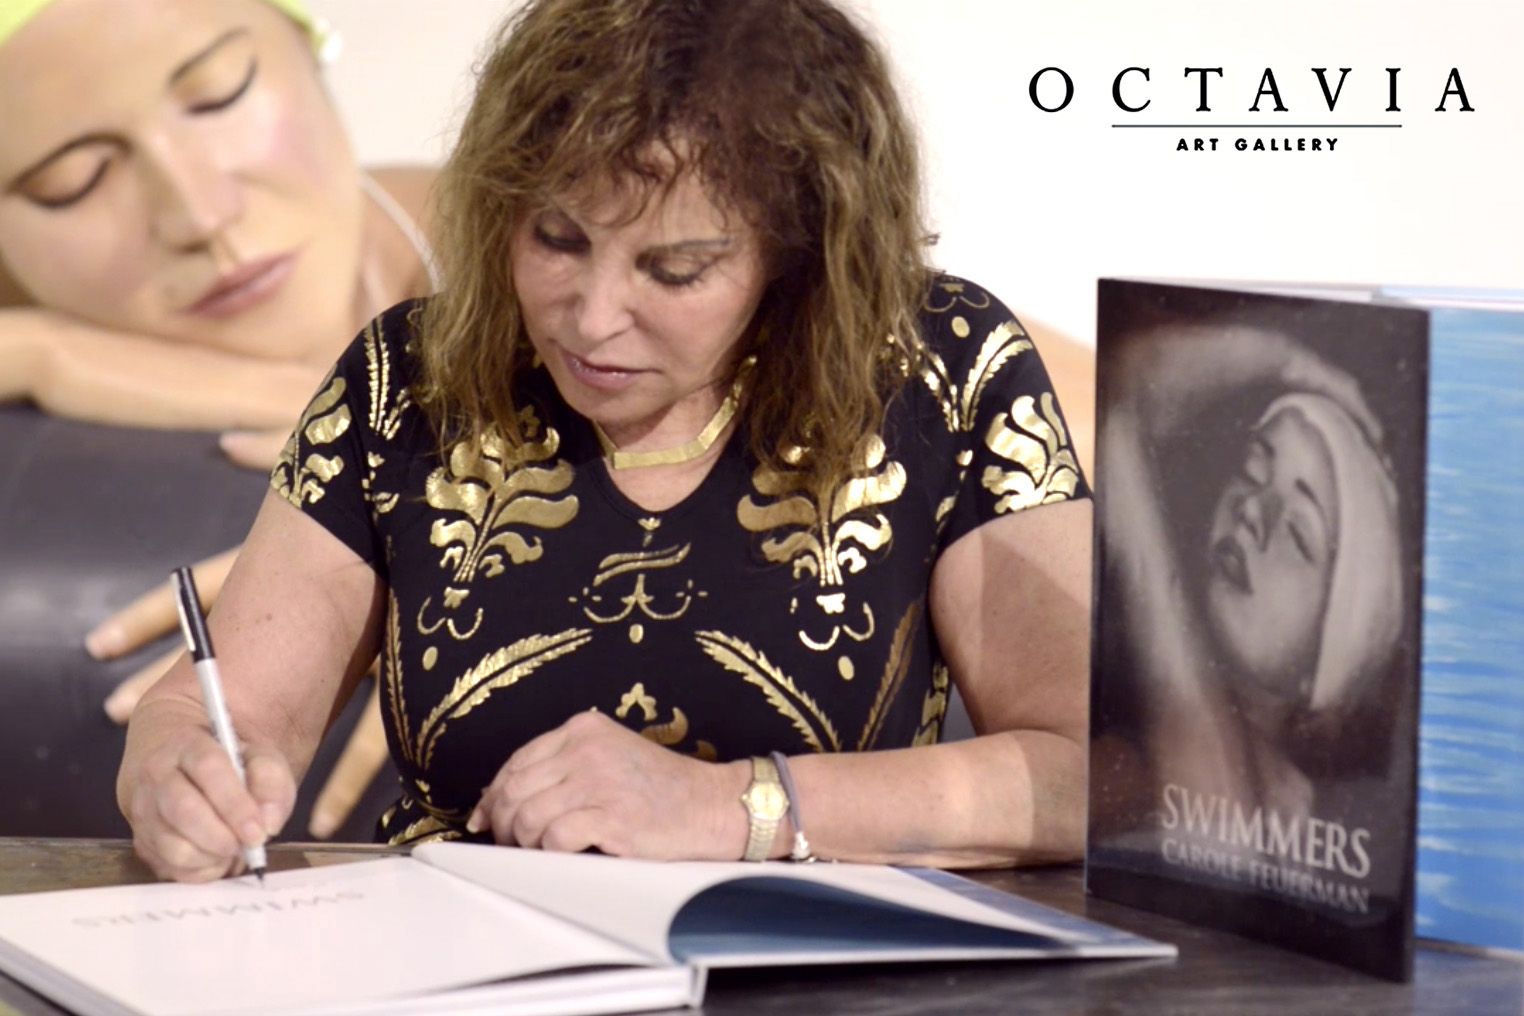 BOOK SIGNING & SOLO SHOW AT OCTAVIA ART GALLERY | HOUSTON    Octavia Art Gallery Houston  held a book signing and solo exhibition forworld-renowned sculptor Carole A. Feuerman  .   Her newest book,   Swimmers  , was published by the Artist Book Foundation and can be purchased  HERE .